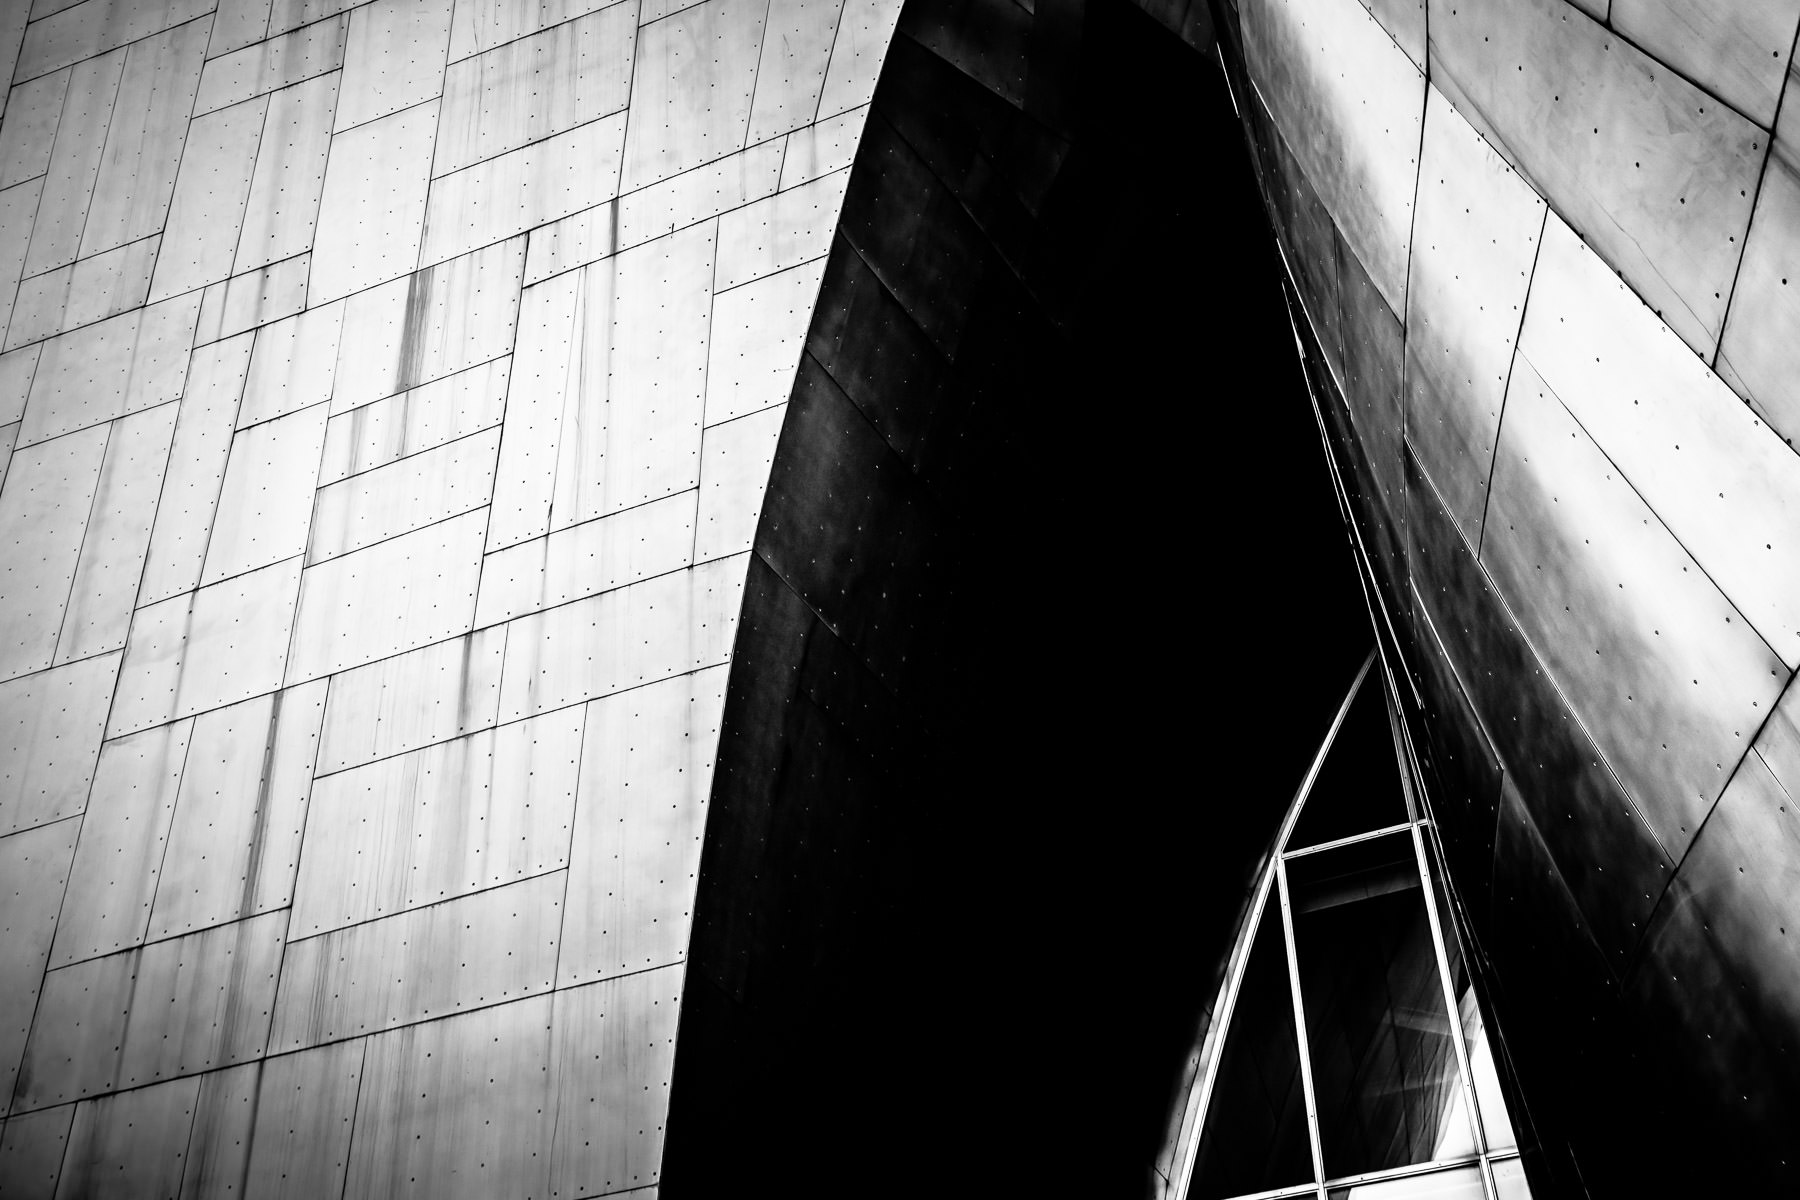 Abstract architectural detail of Seattle's Frank Gehry-designed Museum of Pop Culture.